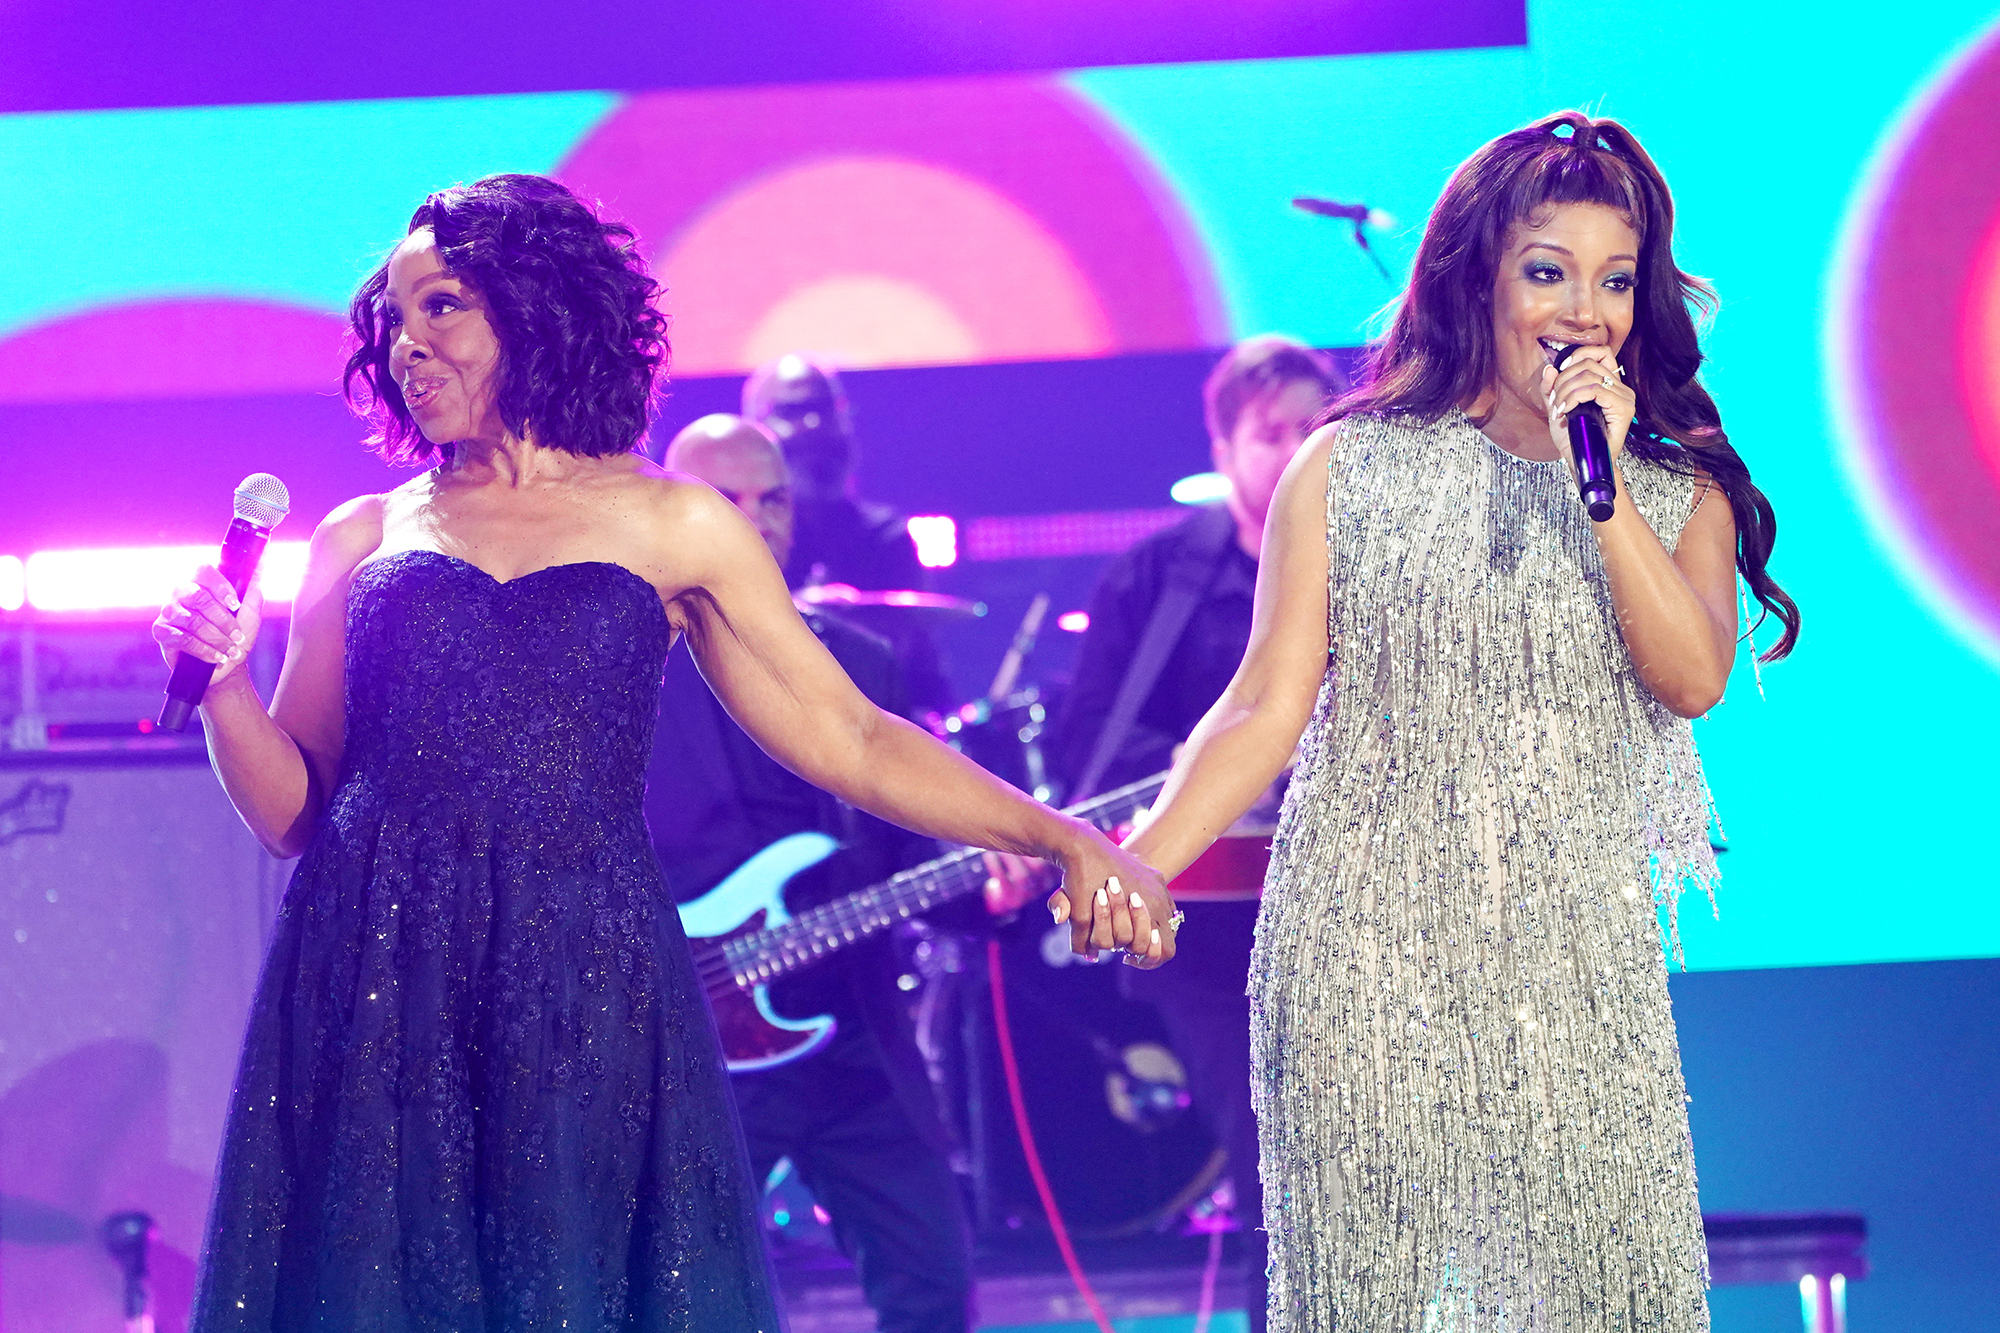 Gladys Knight and Mickey Guyton perform onstage for the 2021 CMT Music Awards at Bridgestone Arena on June 09, 2021